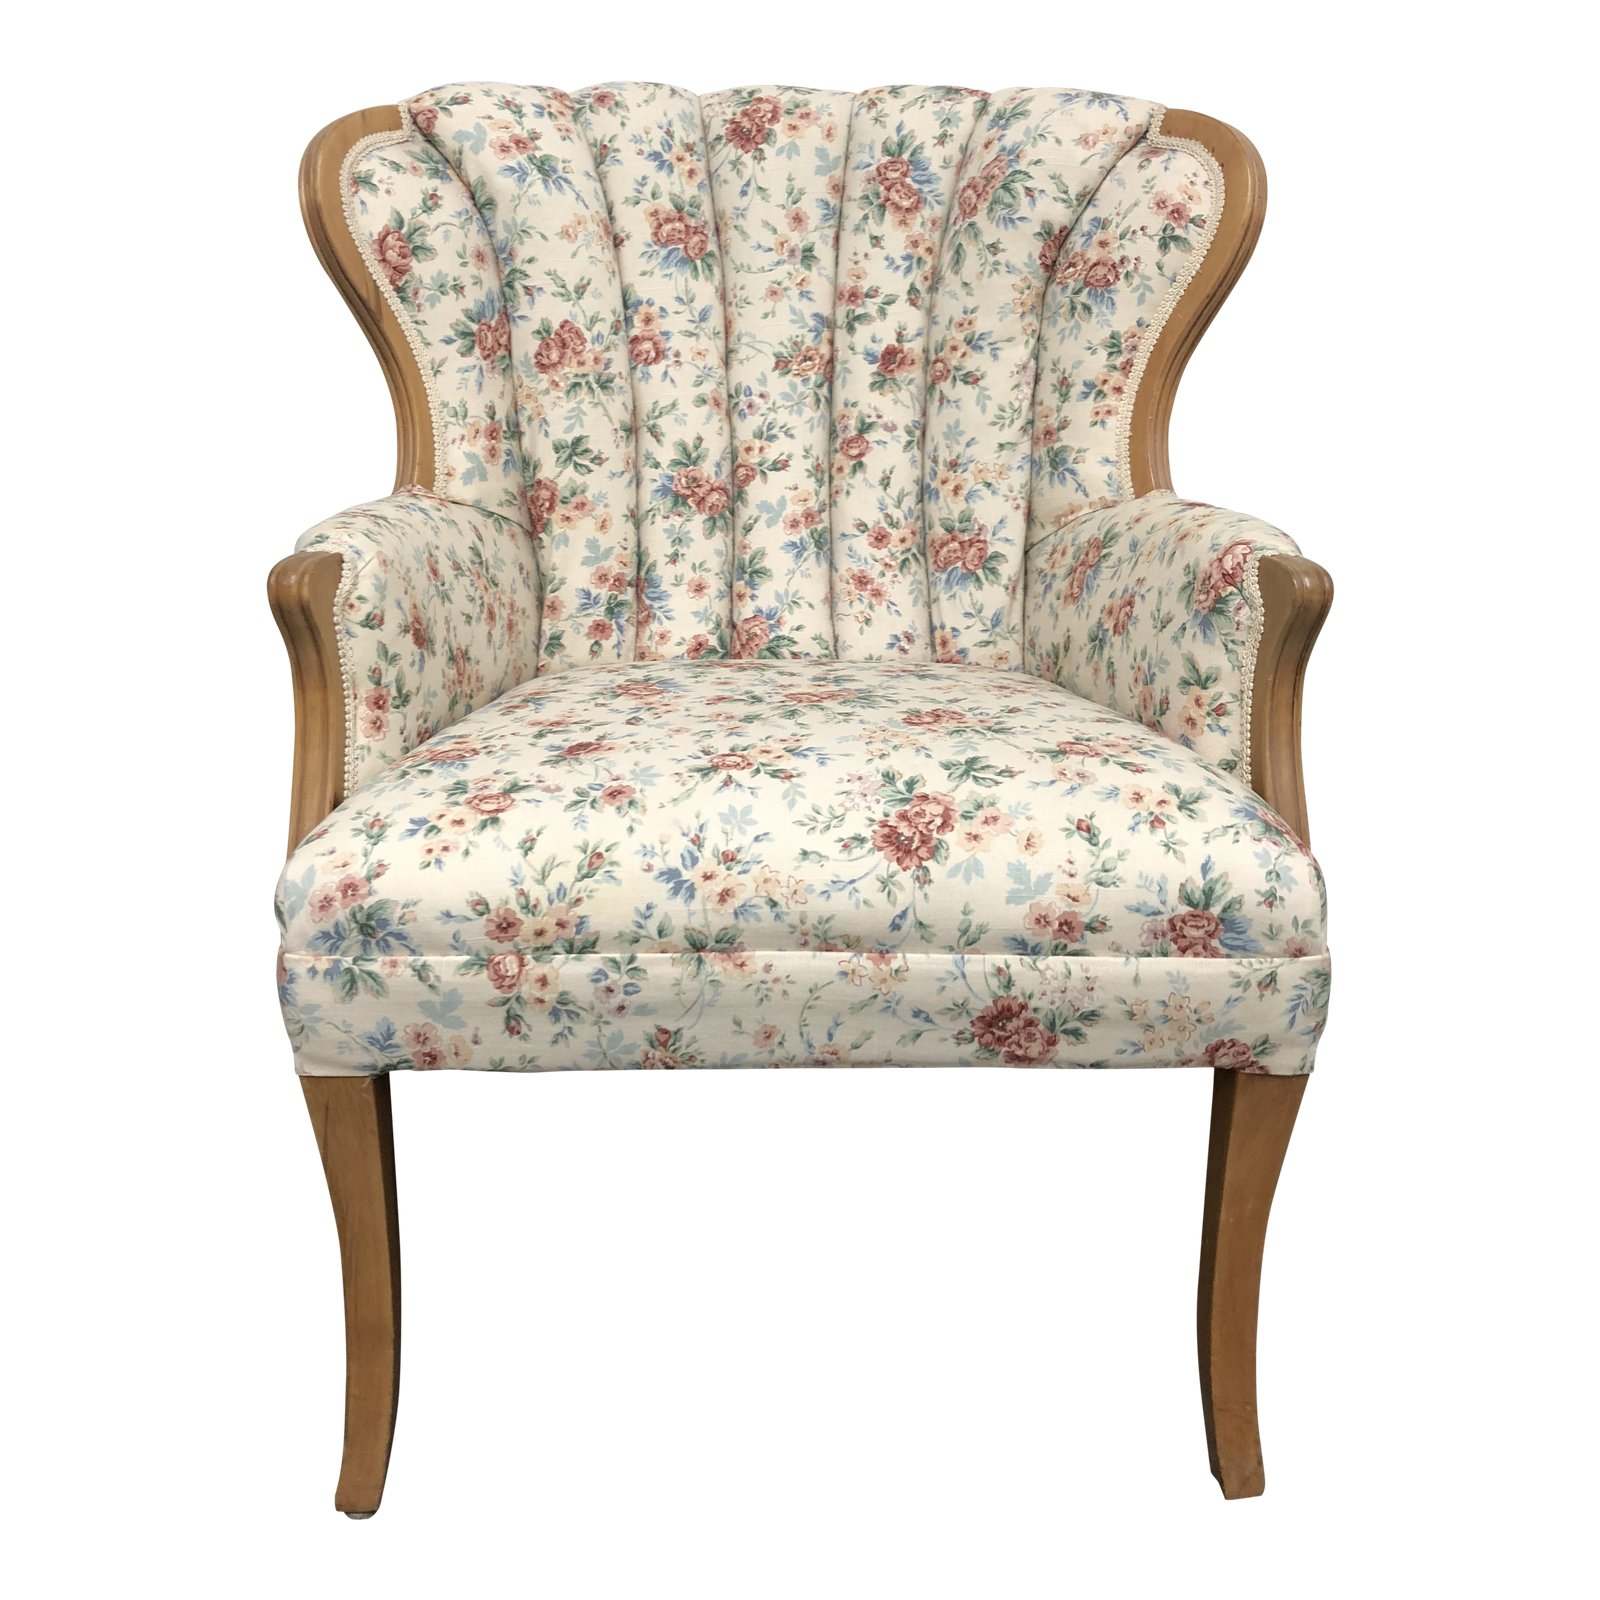 Arm Chairs Mid Century French Style Floral Print Arm Chair Design Plus Gallery